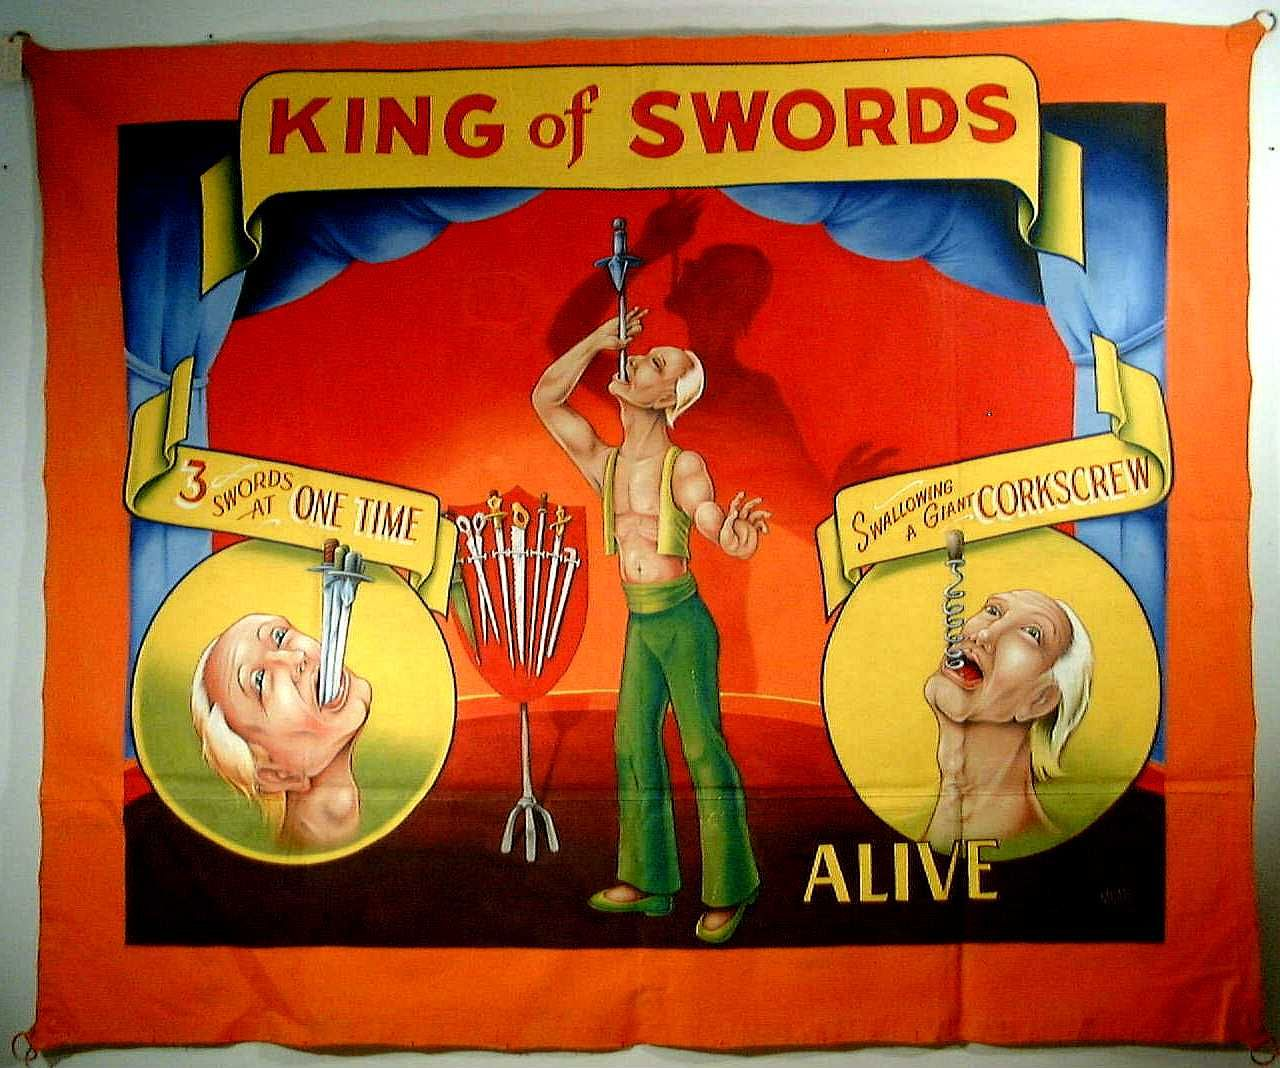 The Carl Hammer Gallery Has A Great Collection Of Vintage Side Show Banners For Sale I Love Artwork On These